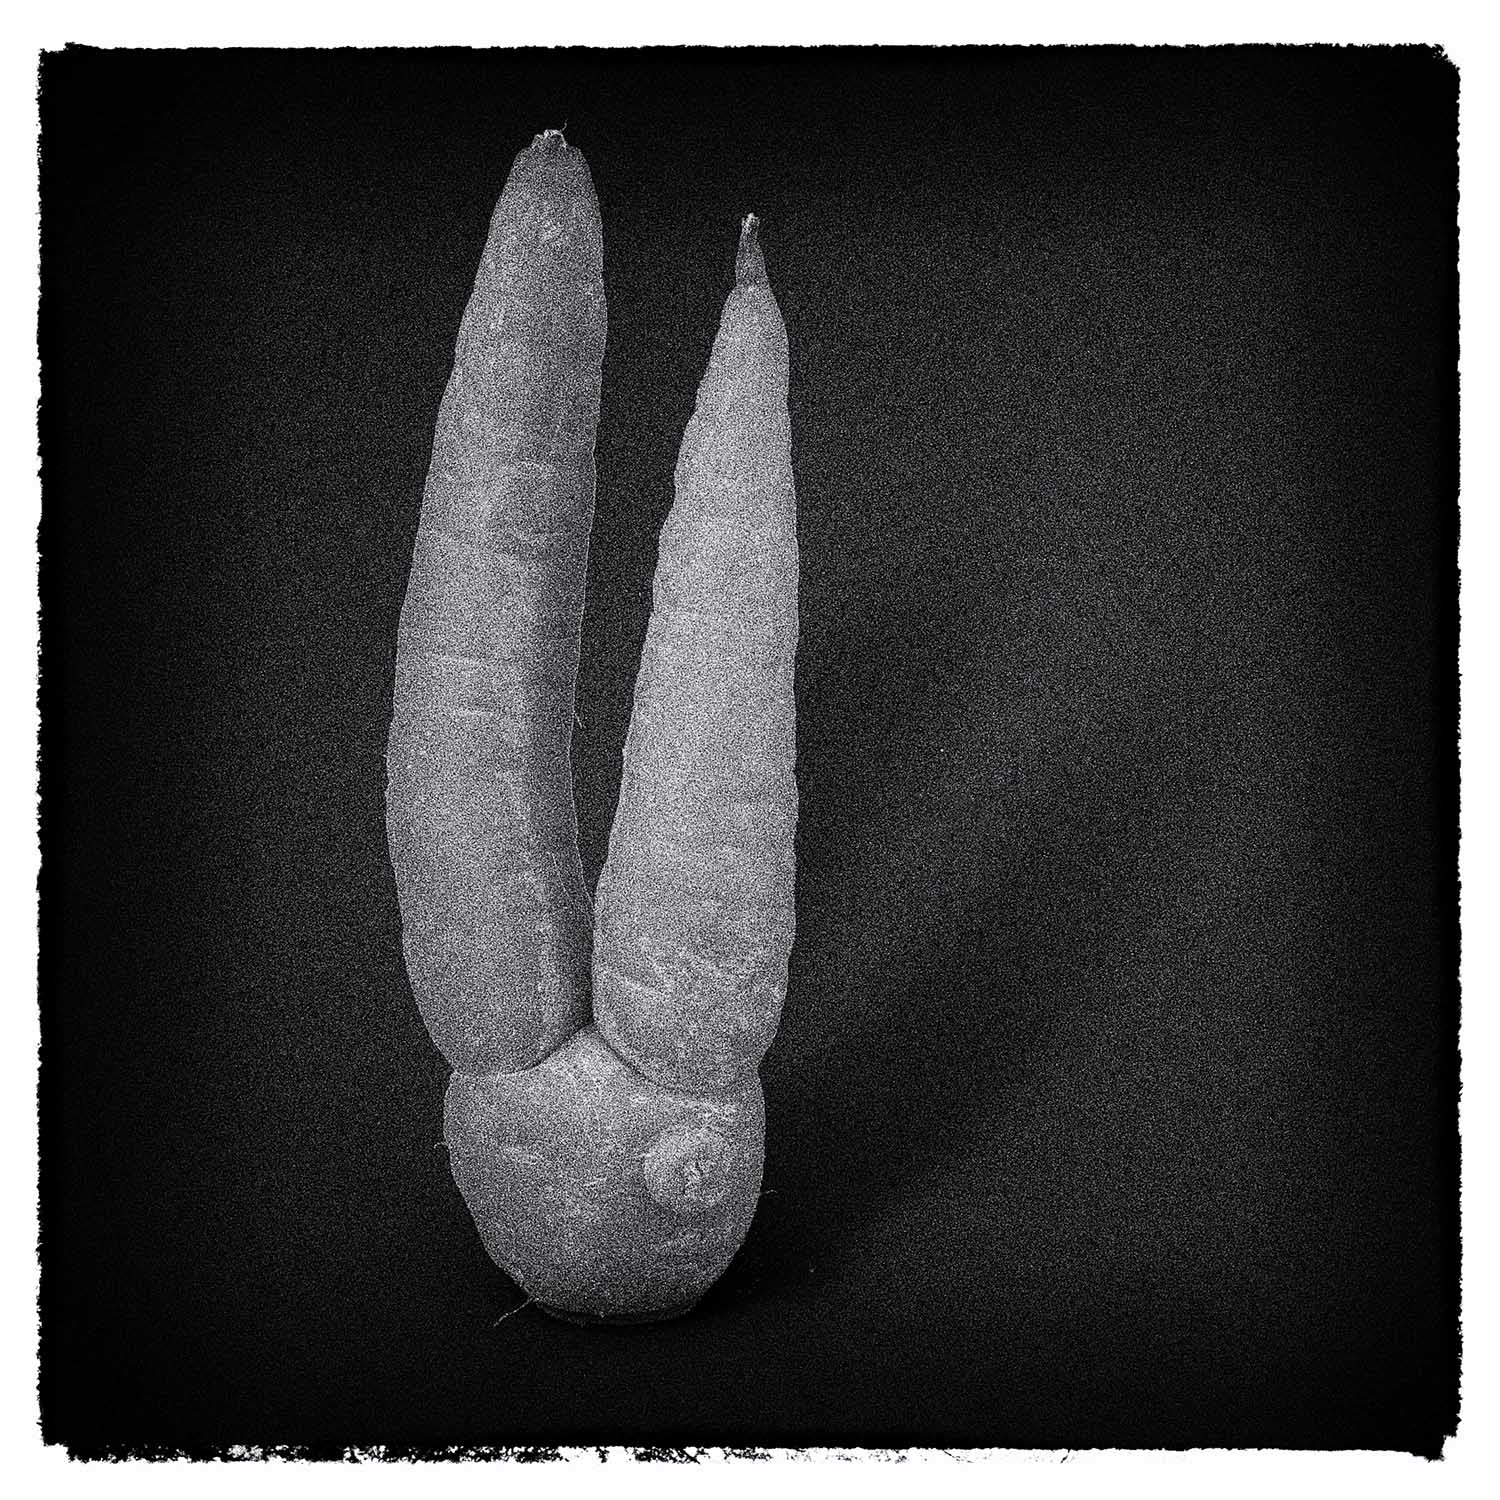 Steve's root vegetable photography